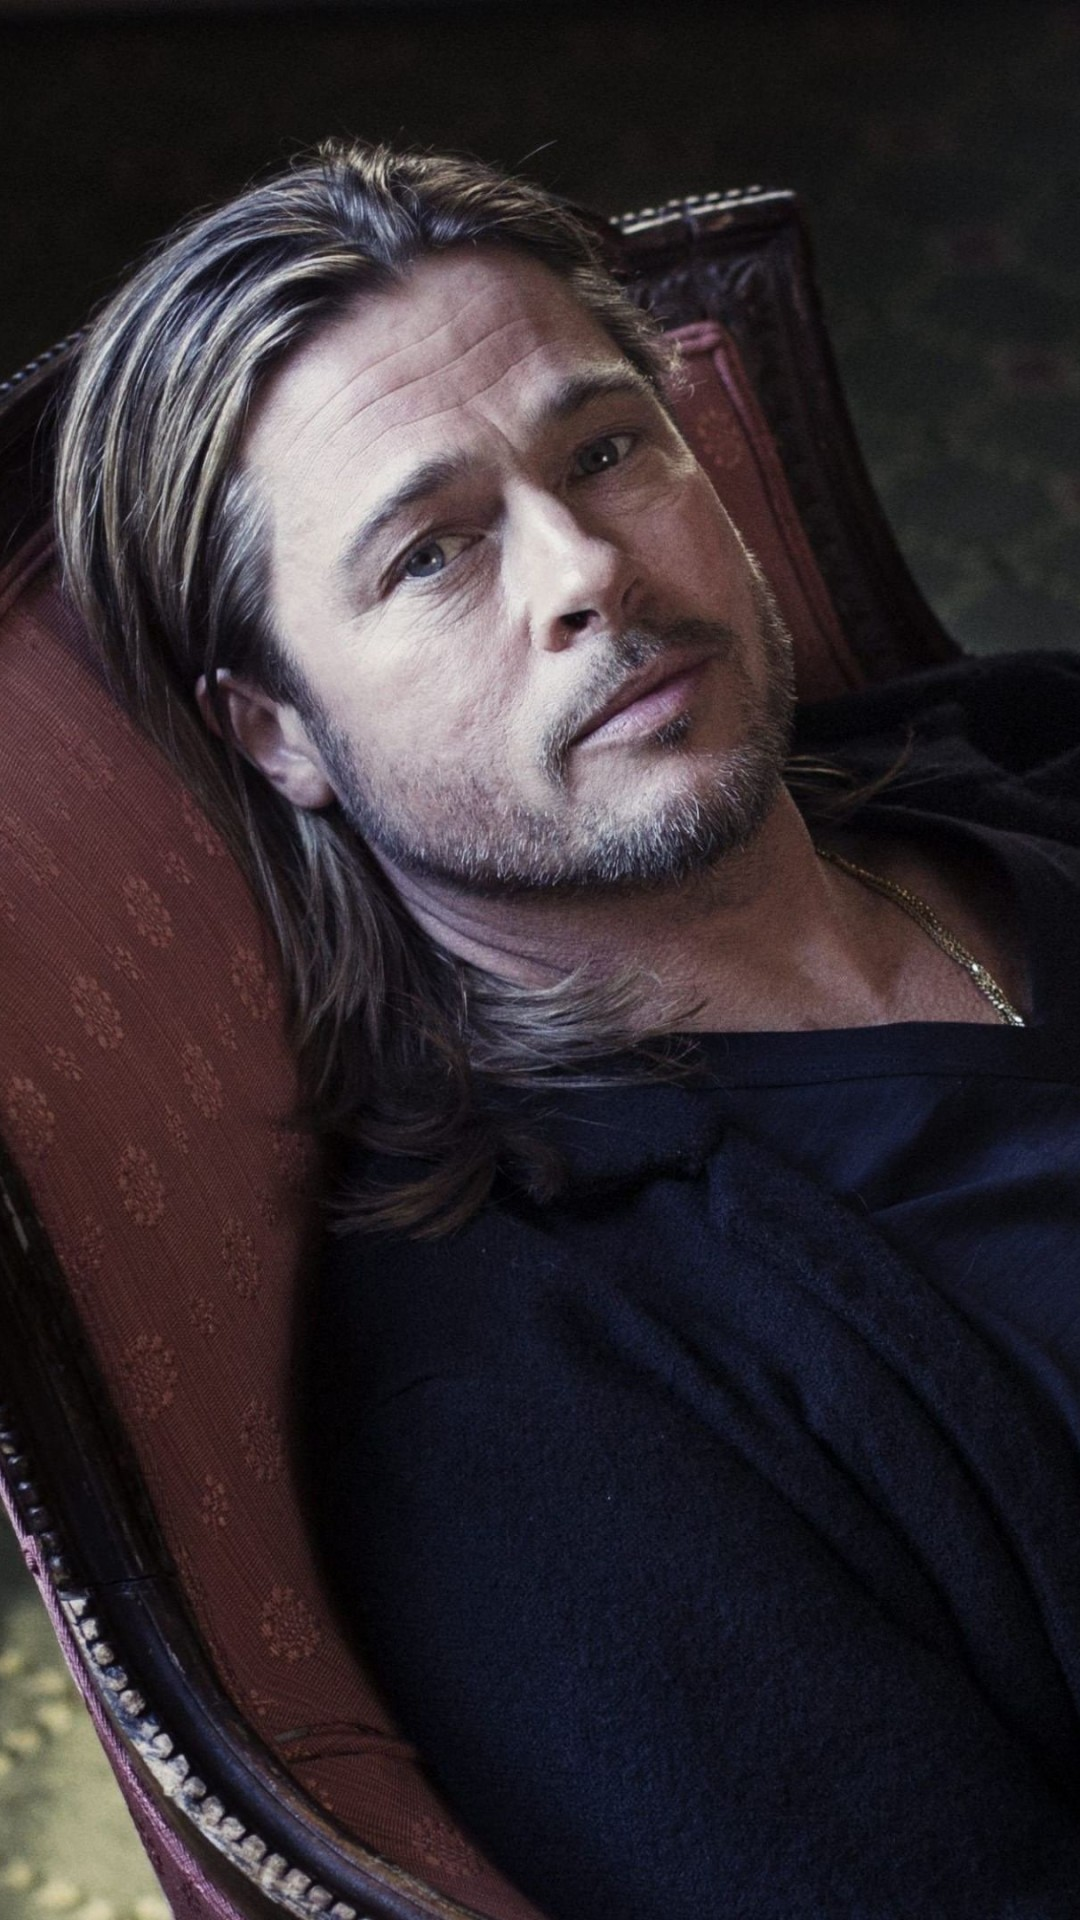 Brad Pitt Sitting On Chair Wallpaper for SONY Xperia Z1